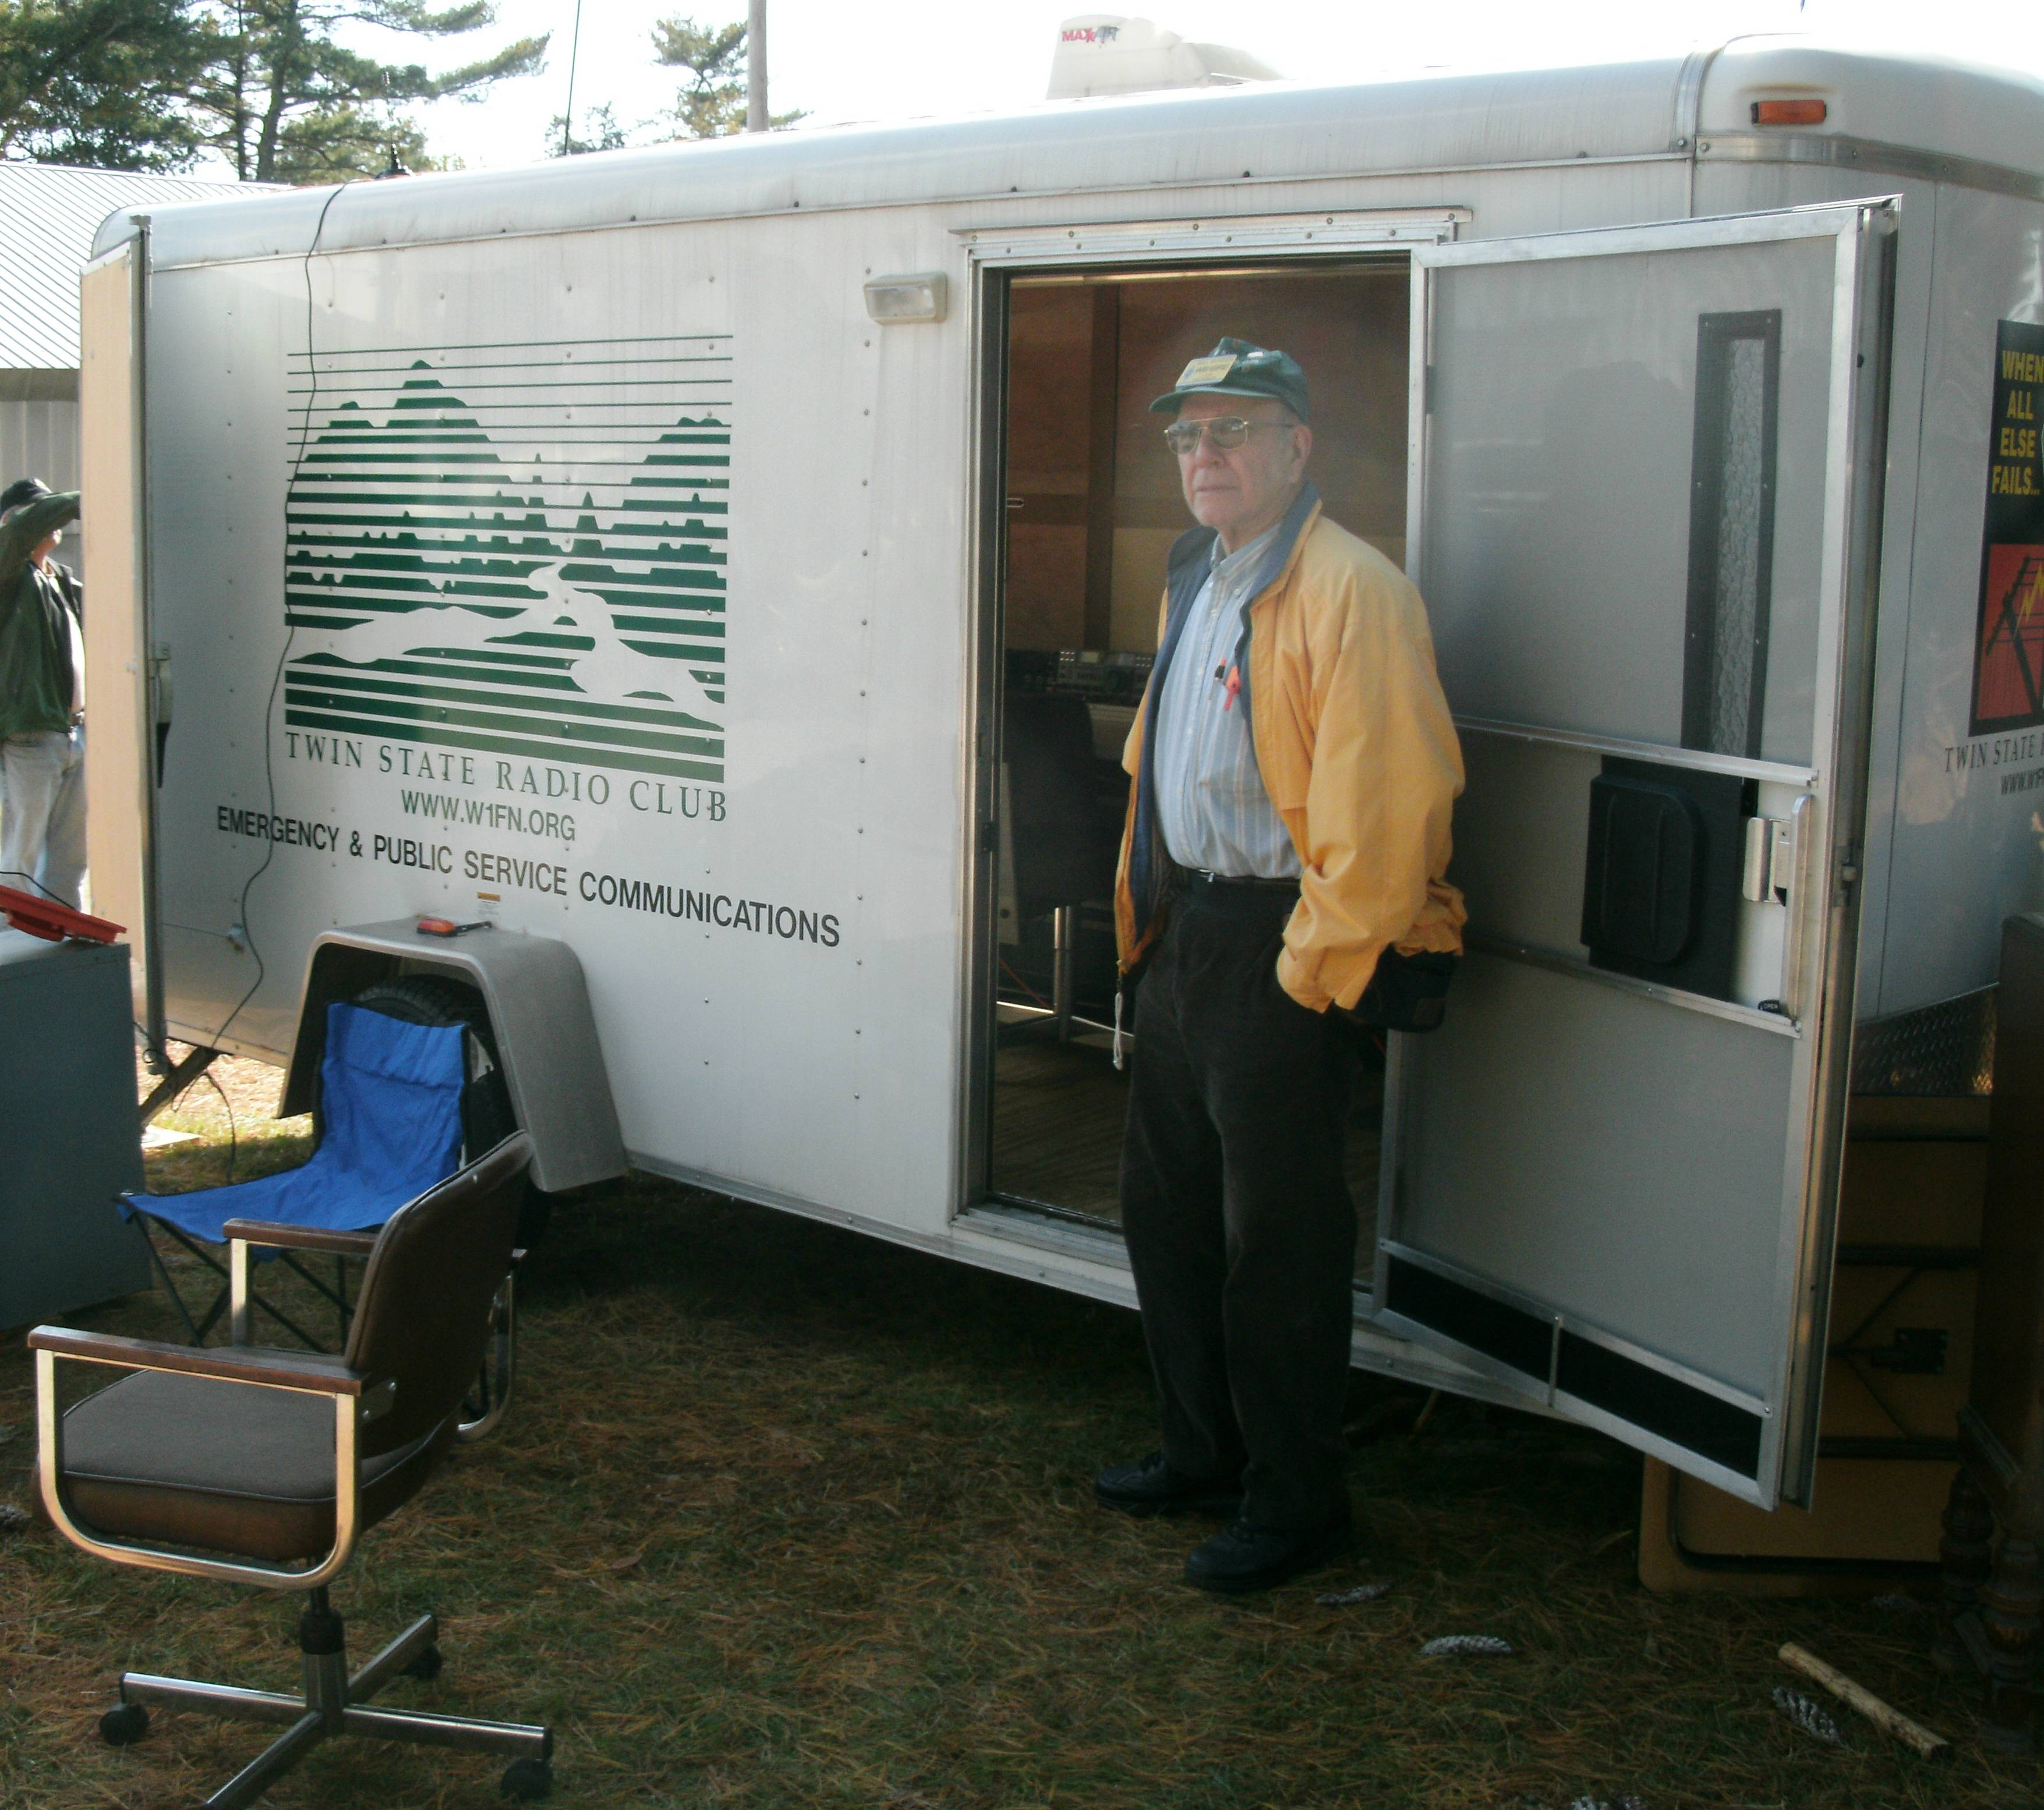 The trailer at NEAR Fest